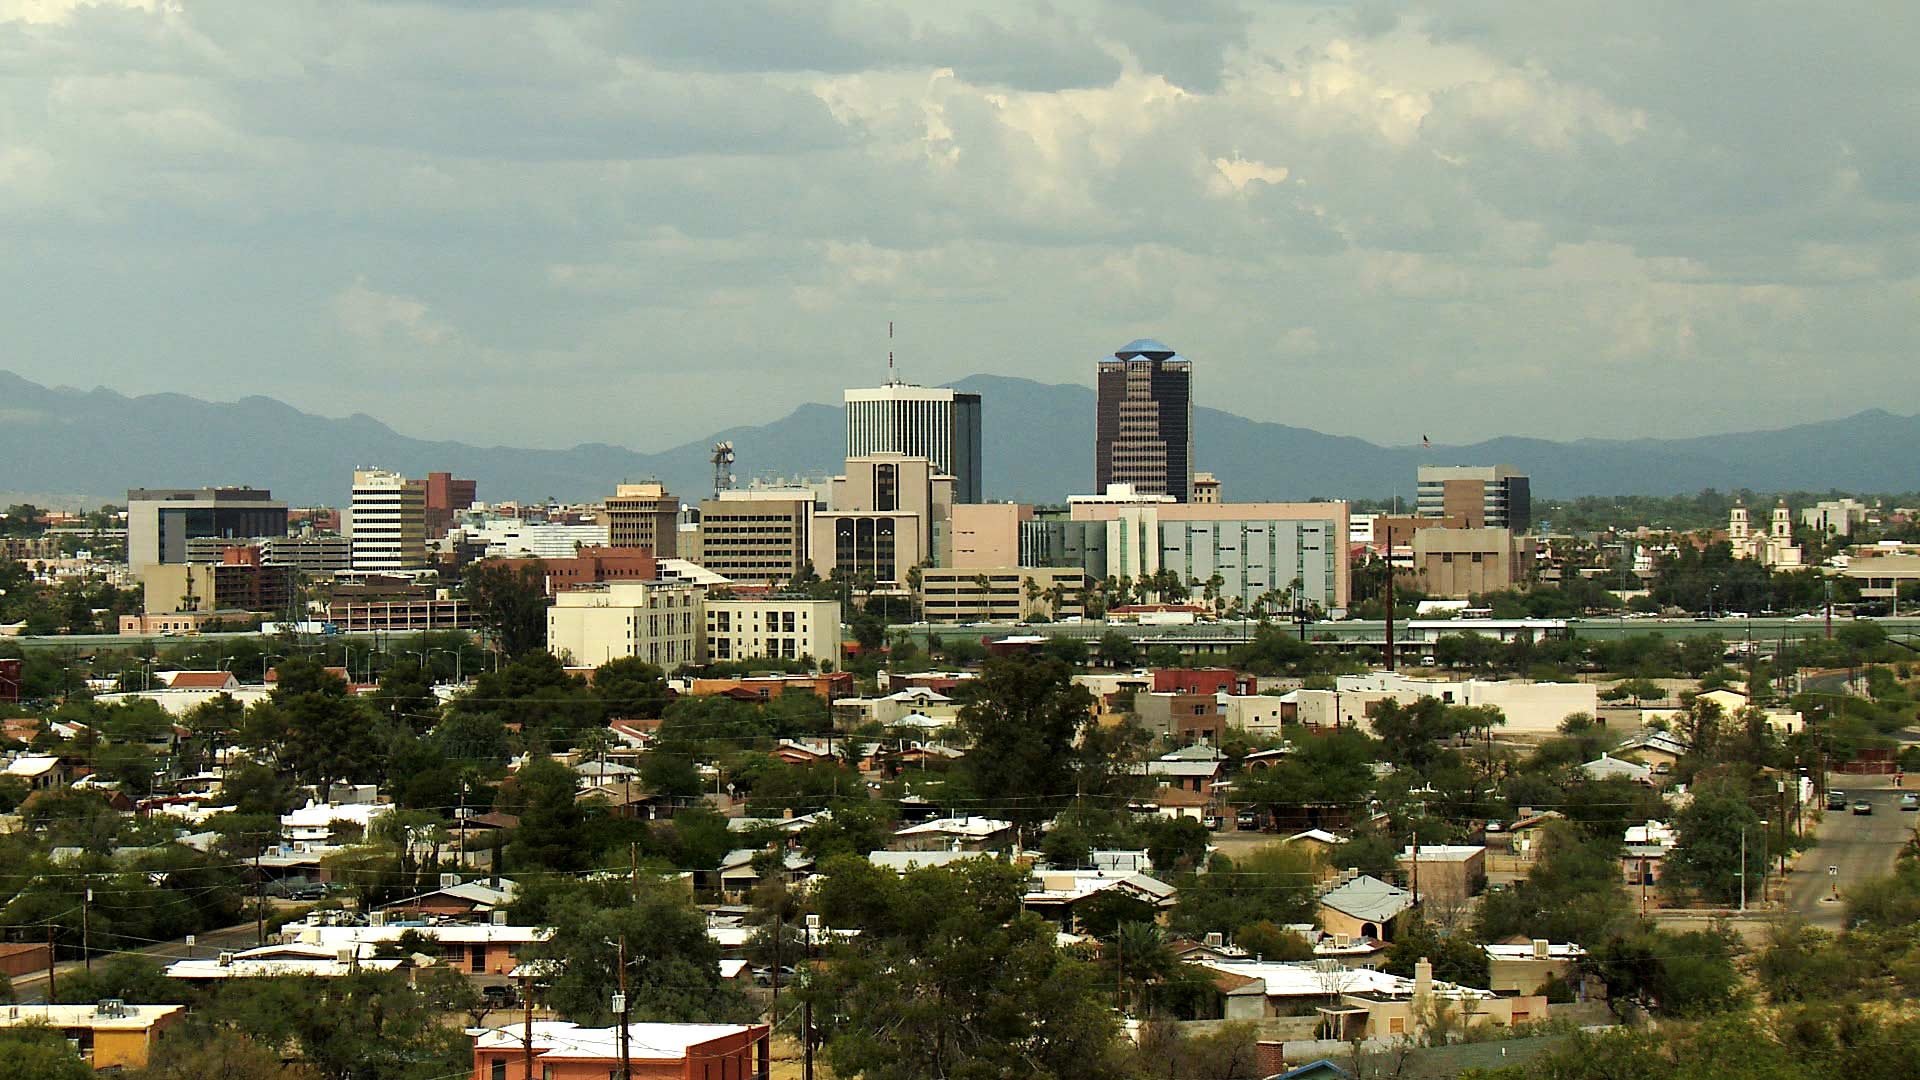 File image of the downtown Tucson skyline.